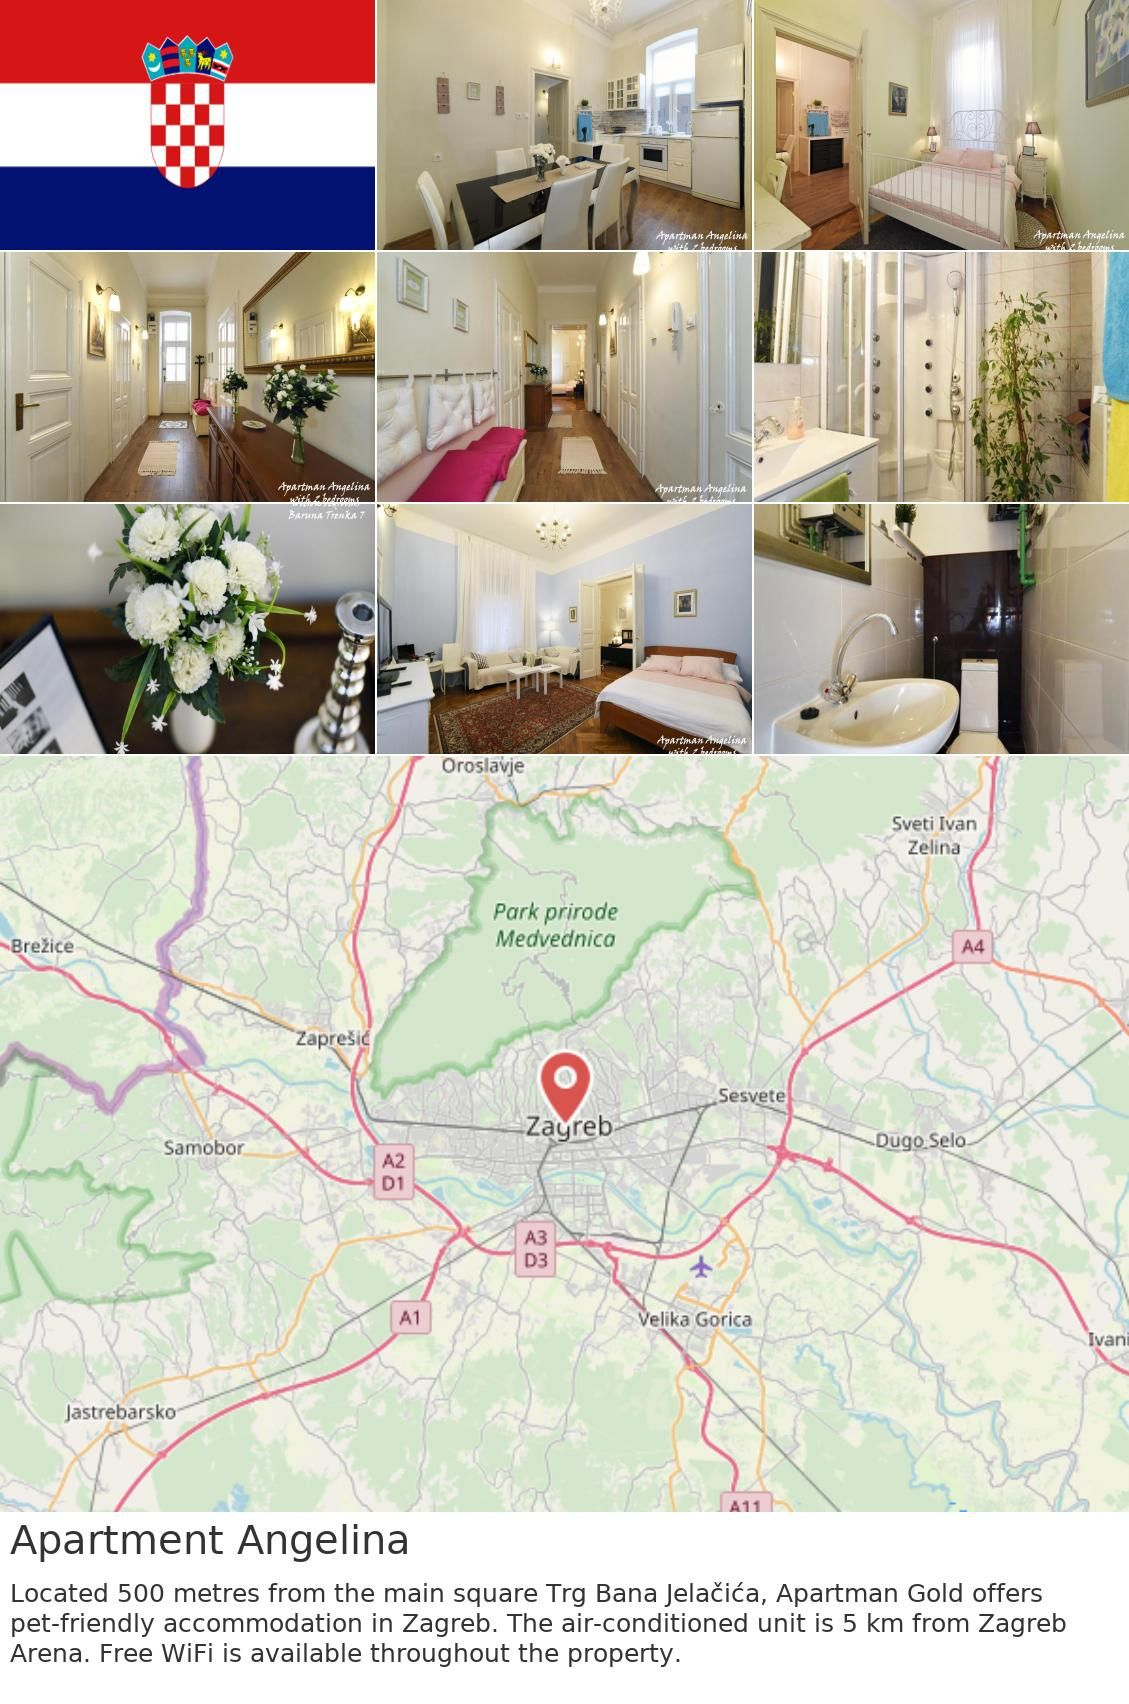 Europe Croatia Zagreb Apartment Angelina Located 500 Metres From The Main Square Trg Bana Jelacica Apartman Gold Offers Pet Friendly Accommodation In Zagre